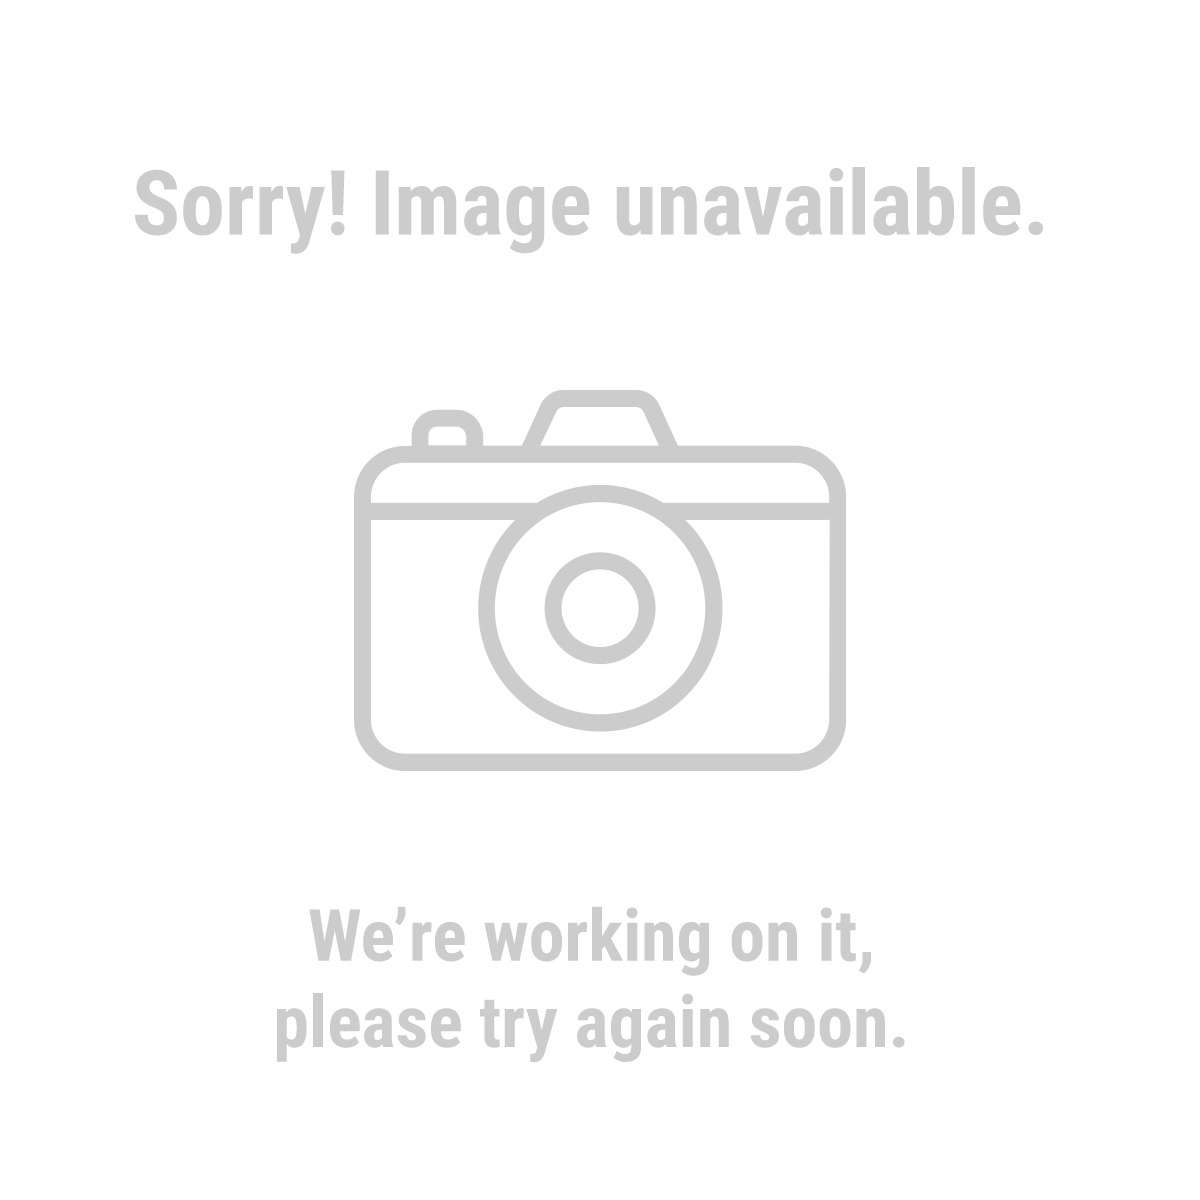 Predator Engines 62554 8 HP (301cc) OHV Horizontal Shaft Gas Engine EPA